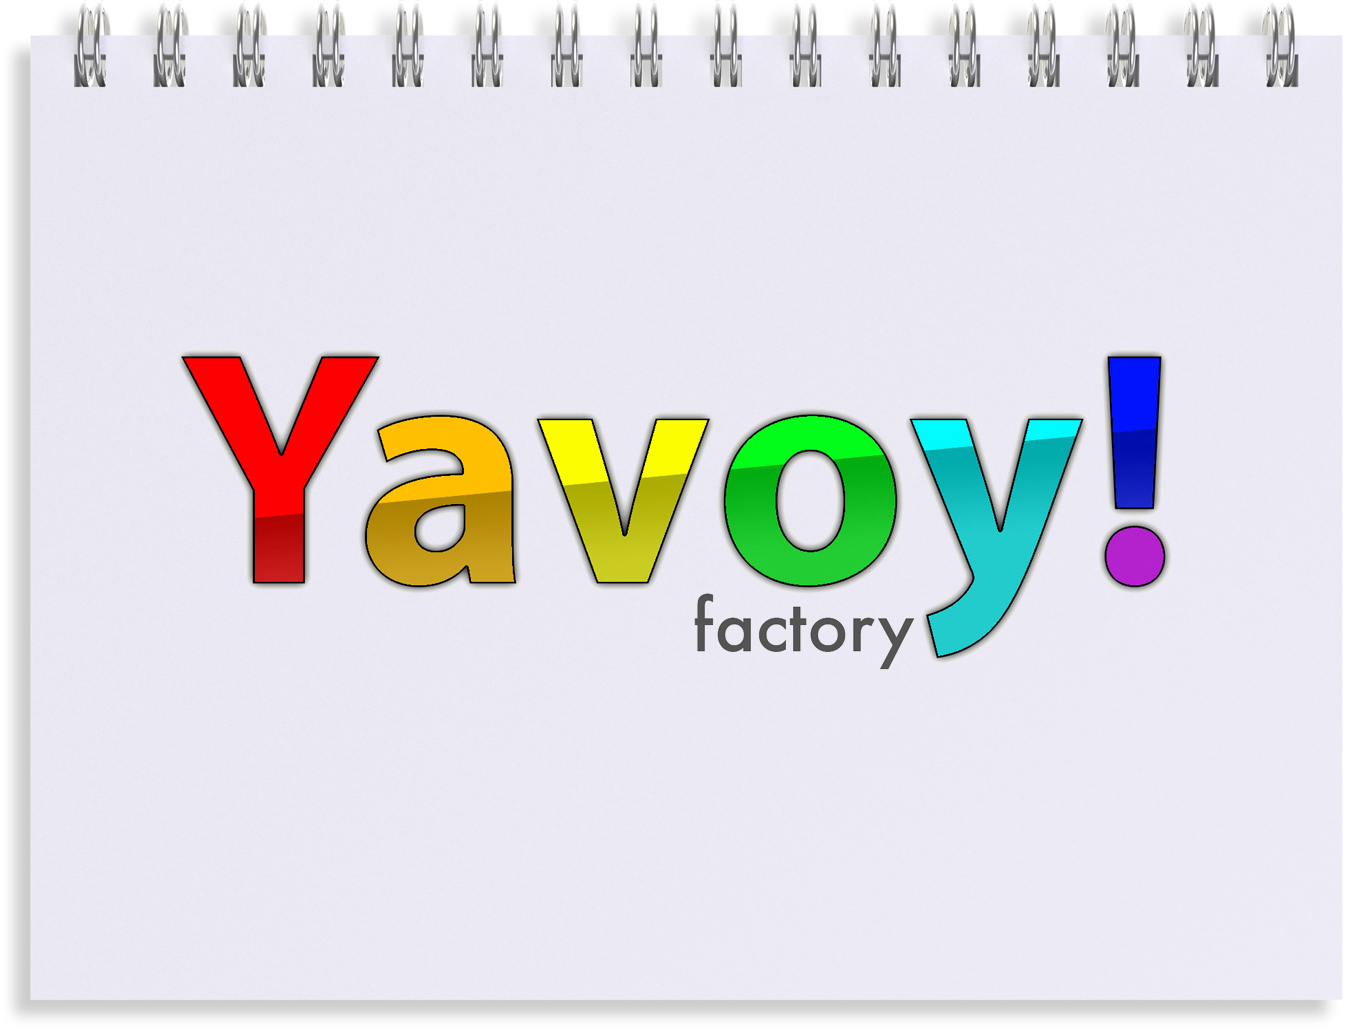 yavoy! factory.